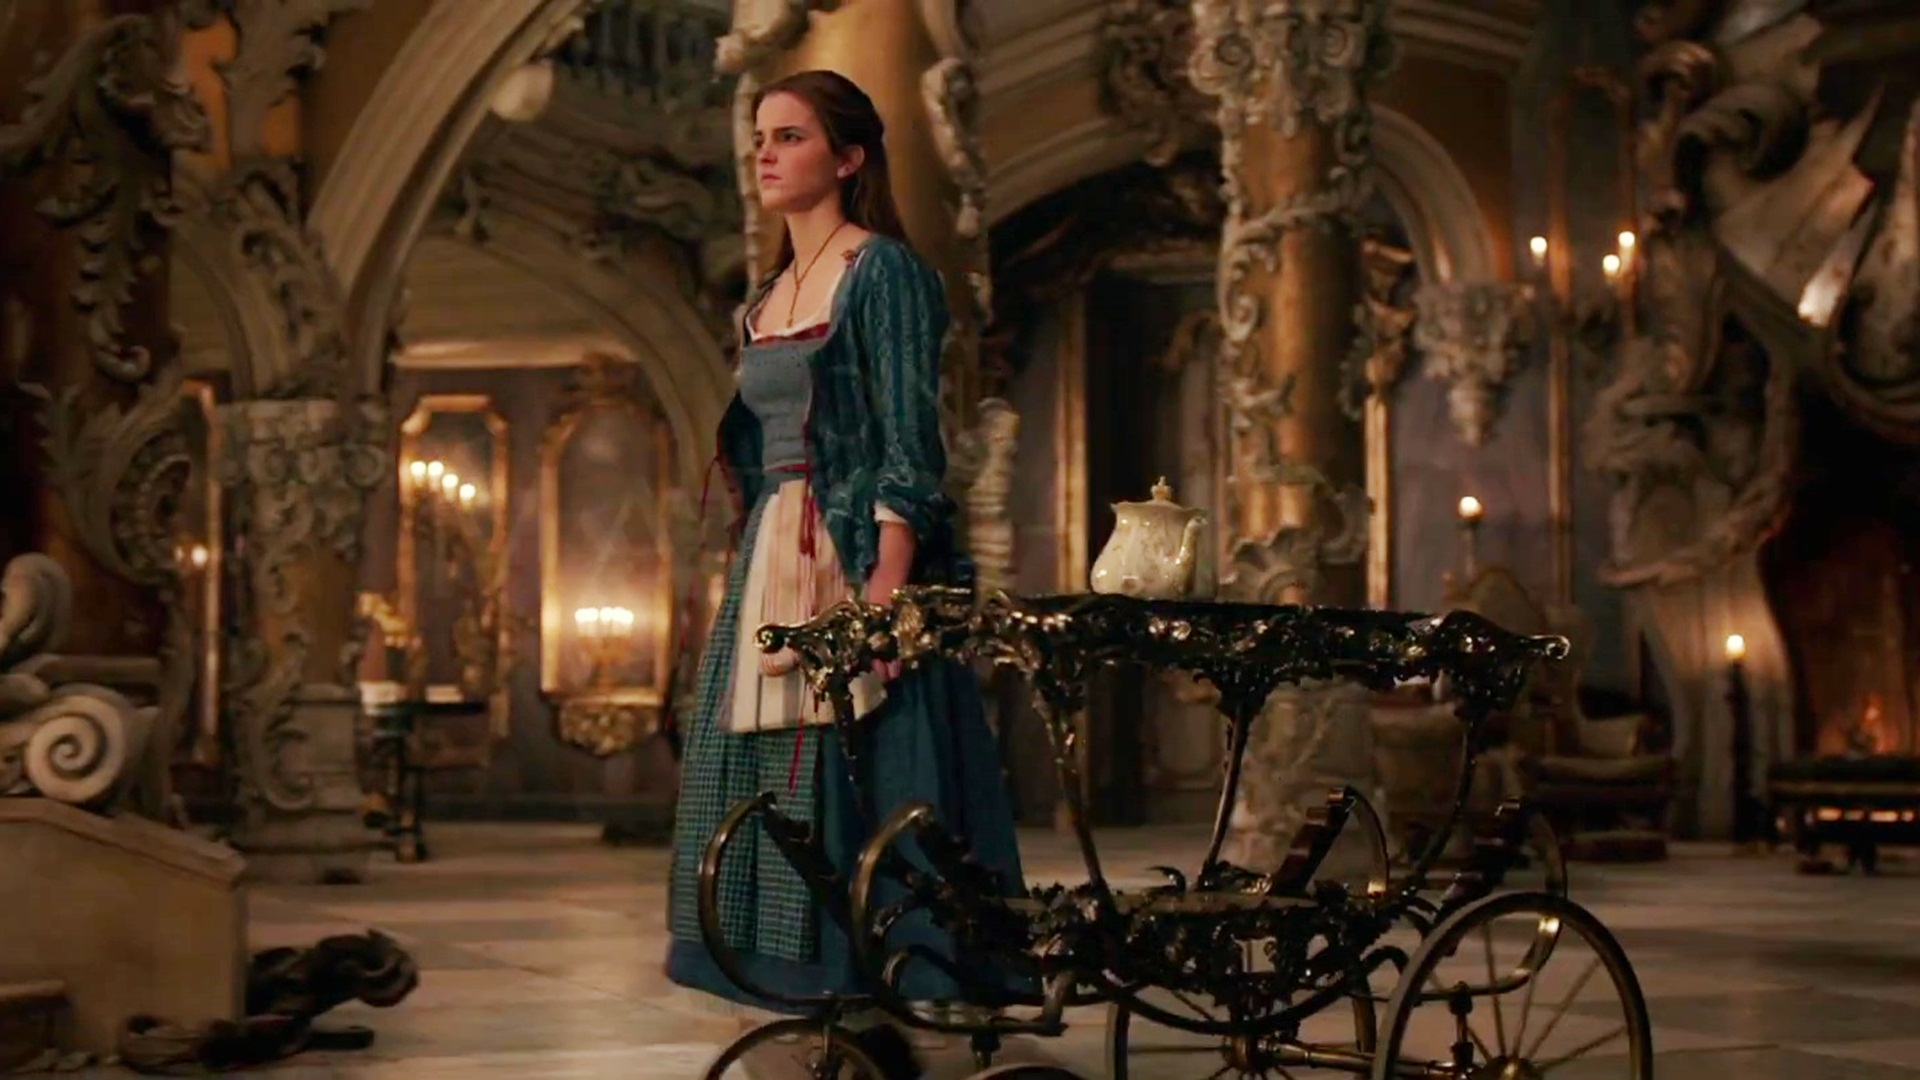 beauty and the beast 2017 free download full movie